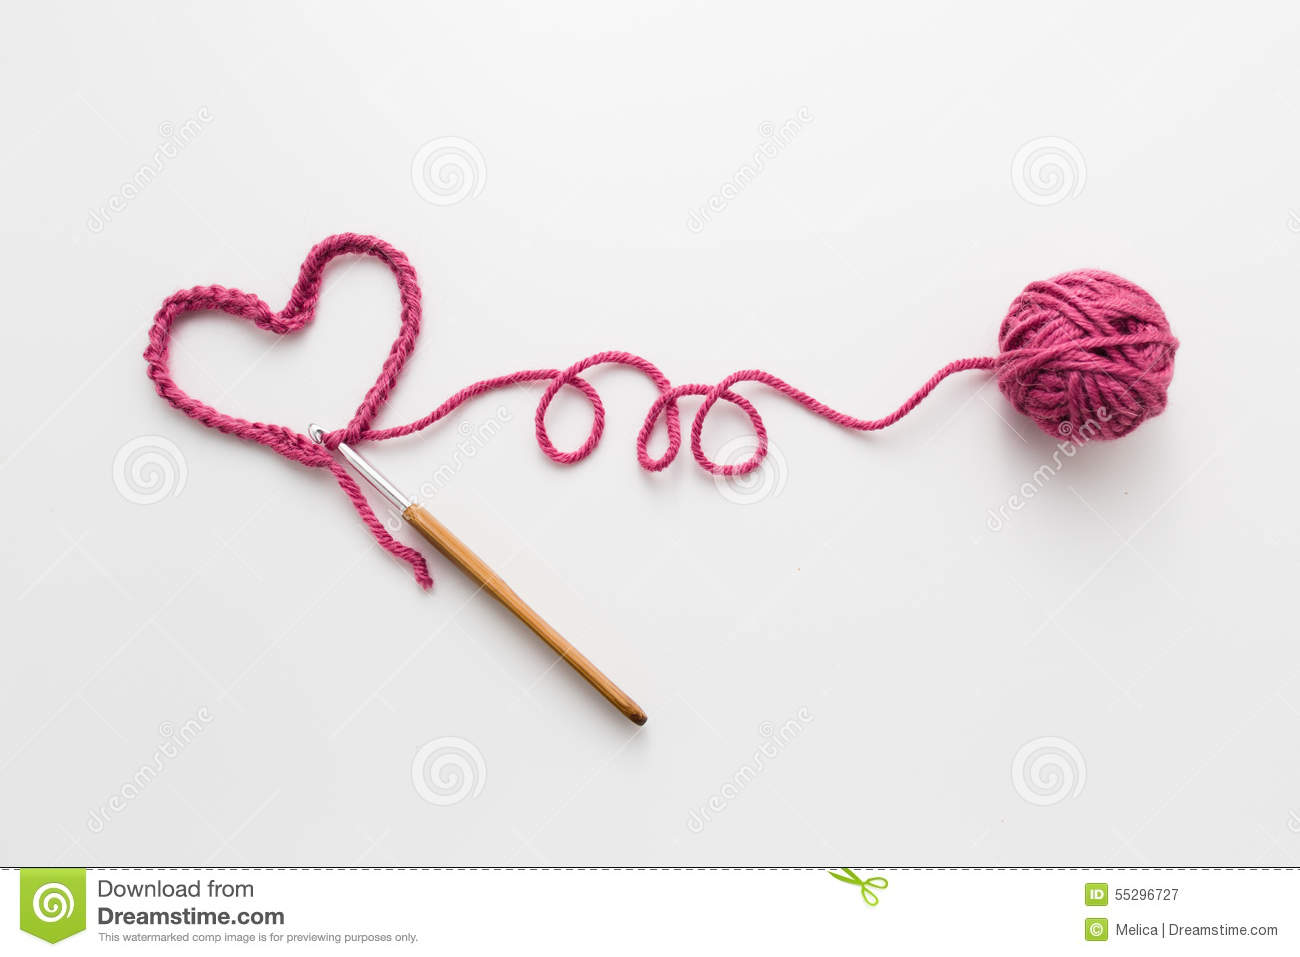 crochet stock image image of fiber homemade decoration 55296727 rh dreamstime com Crochet Border Clip Art Crochet Needle Clip Art